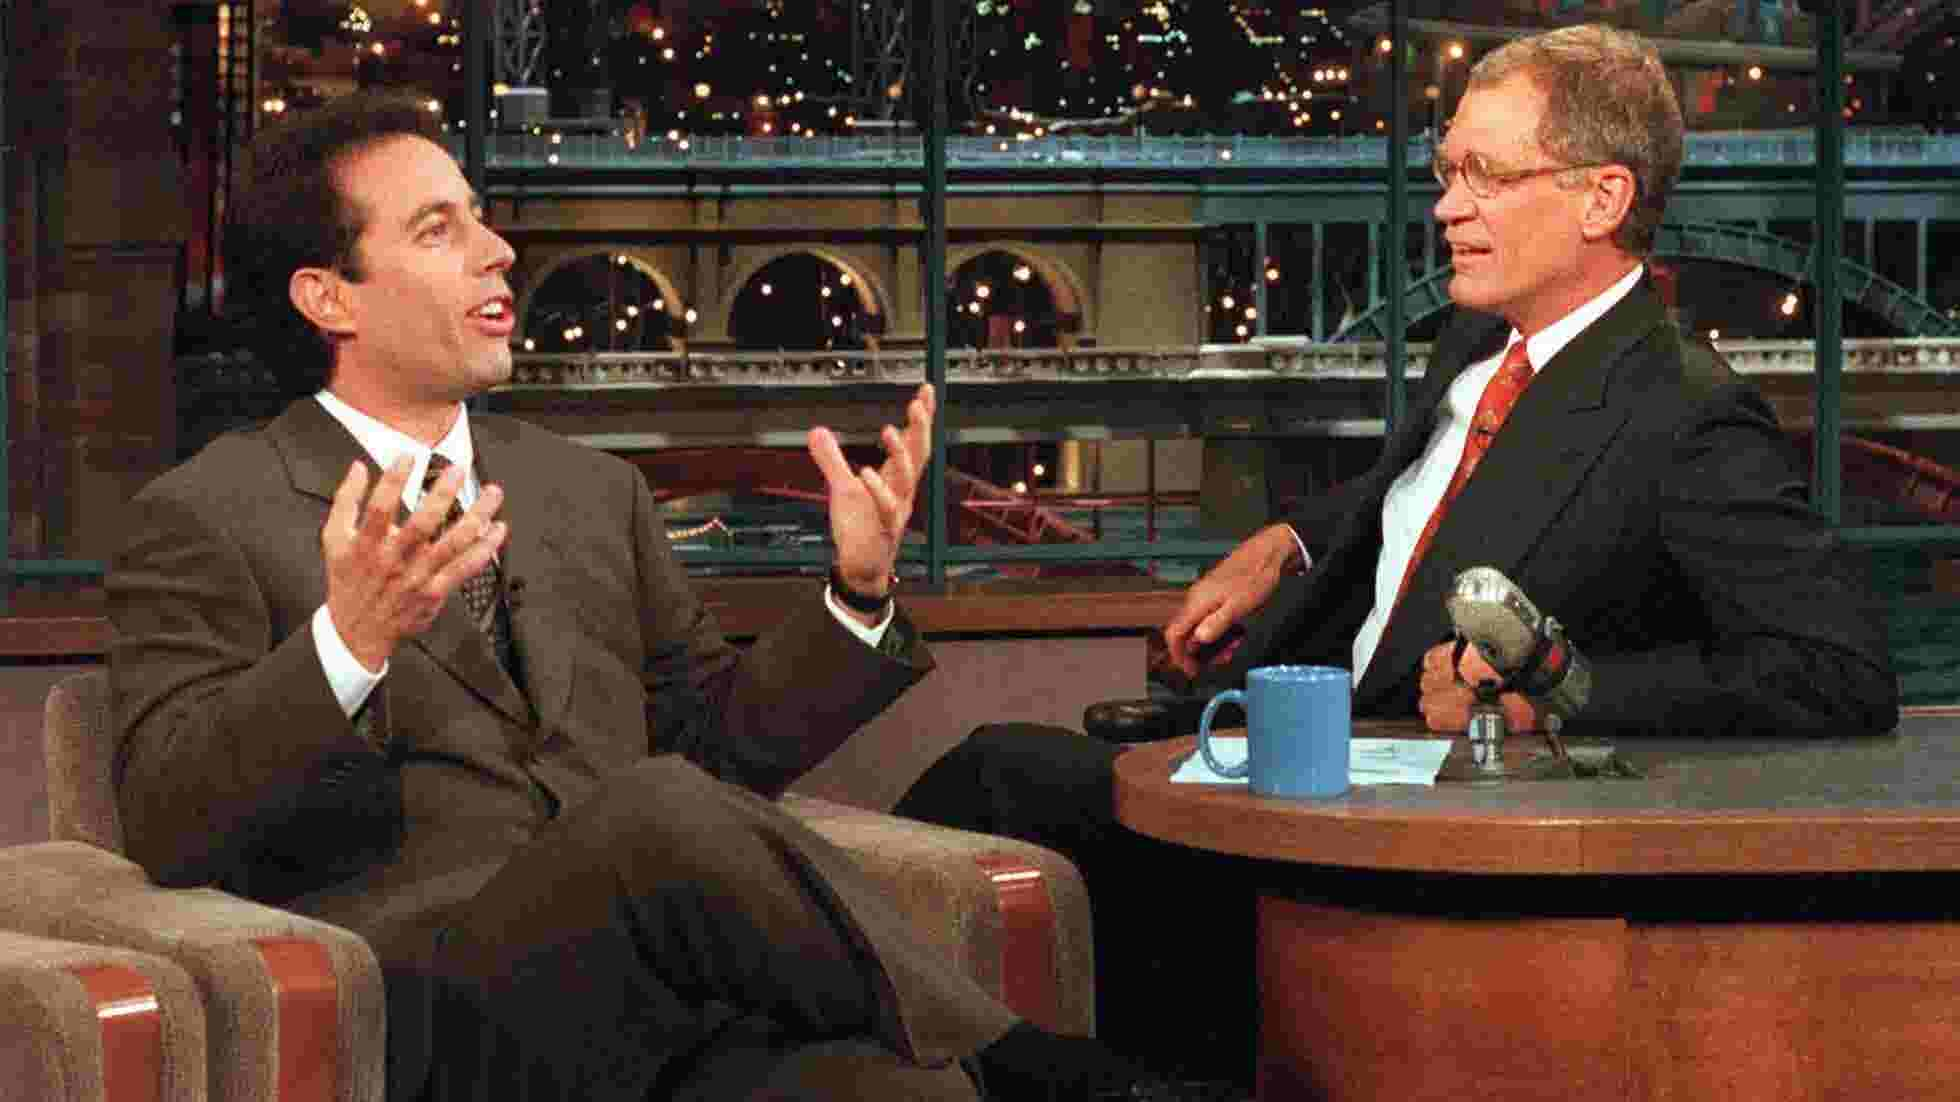 David Letterman interviewed Trump more than 30 times. Here's what he wants to ask now